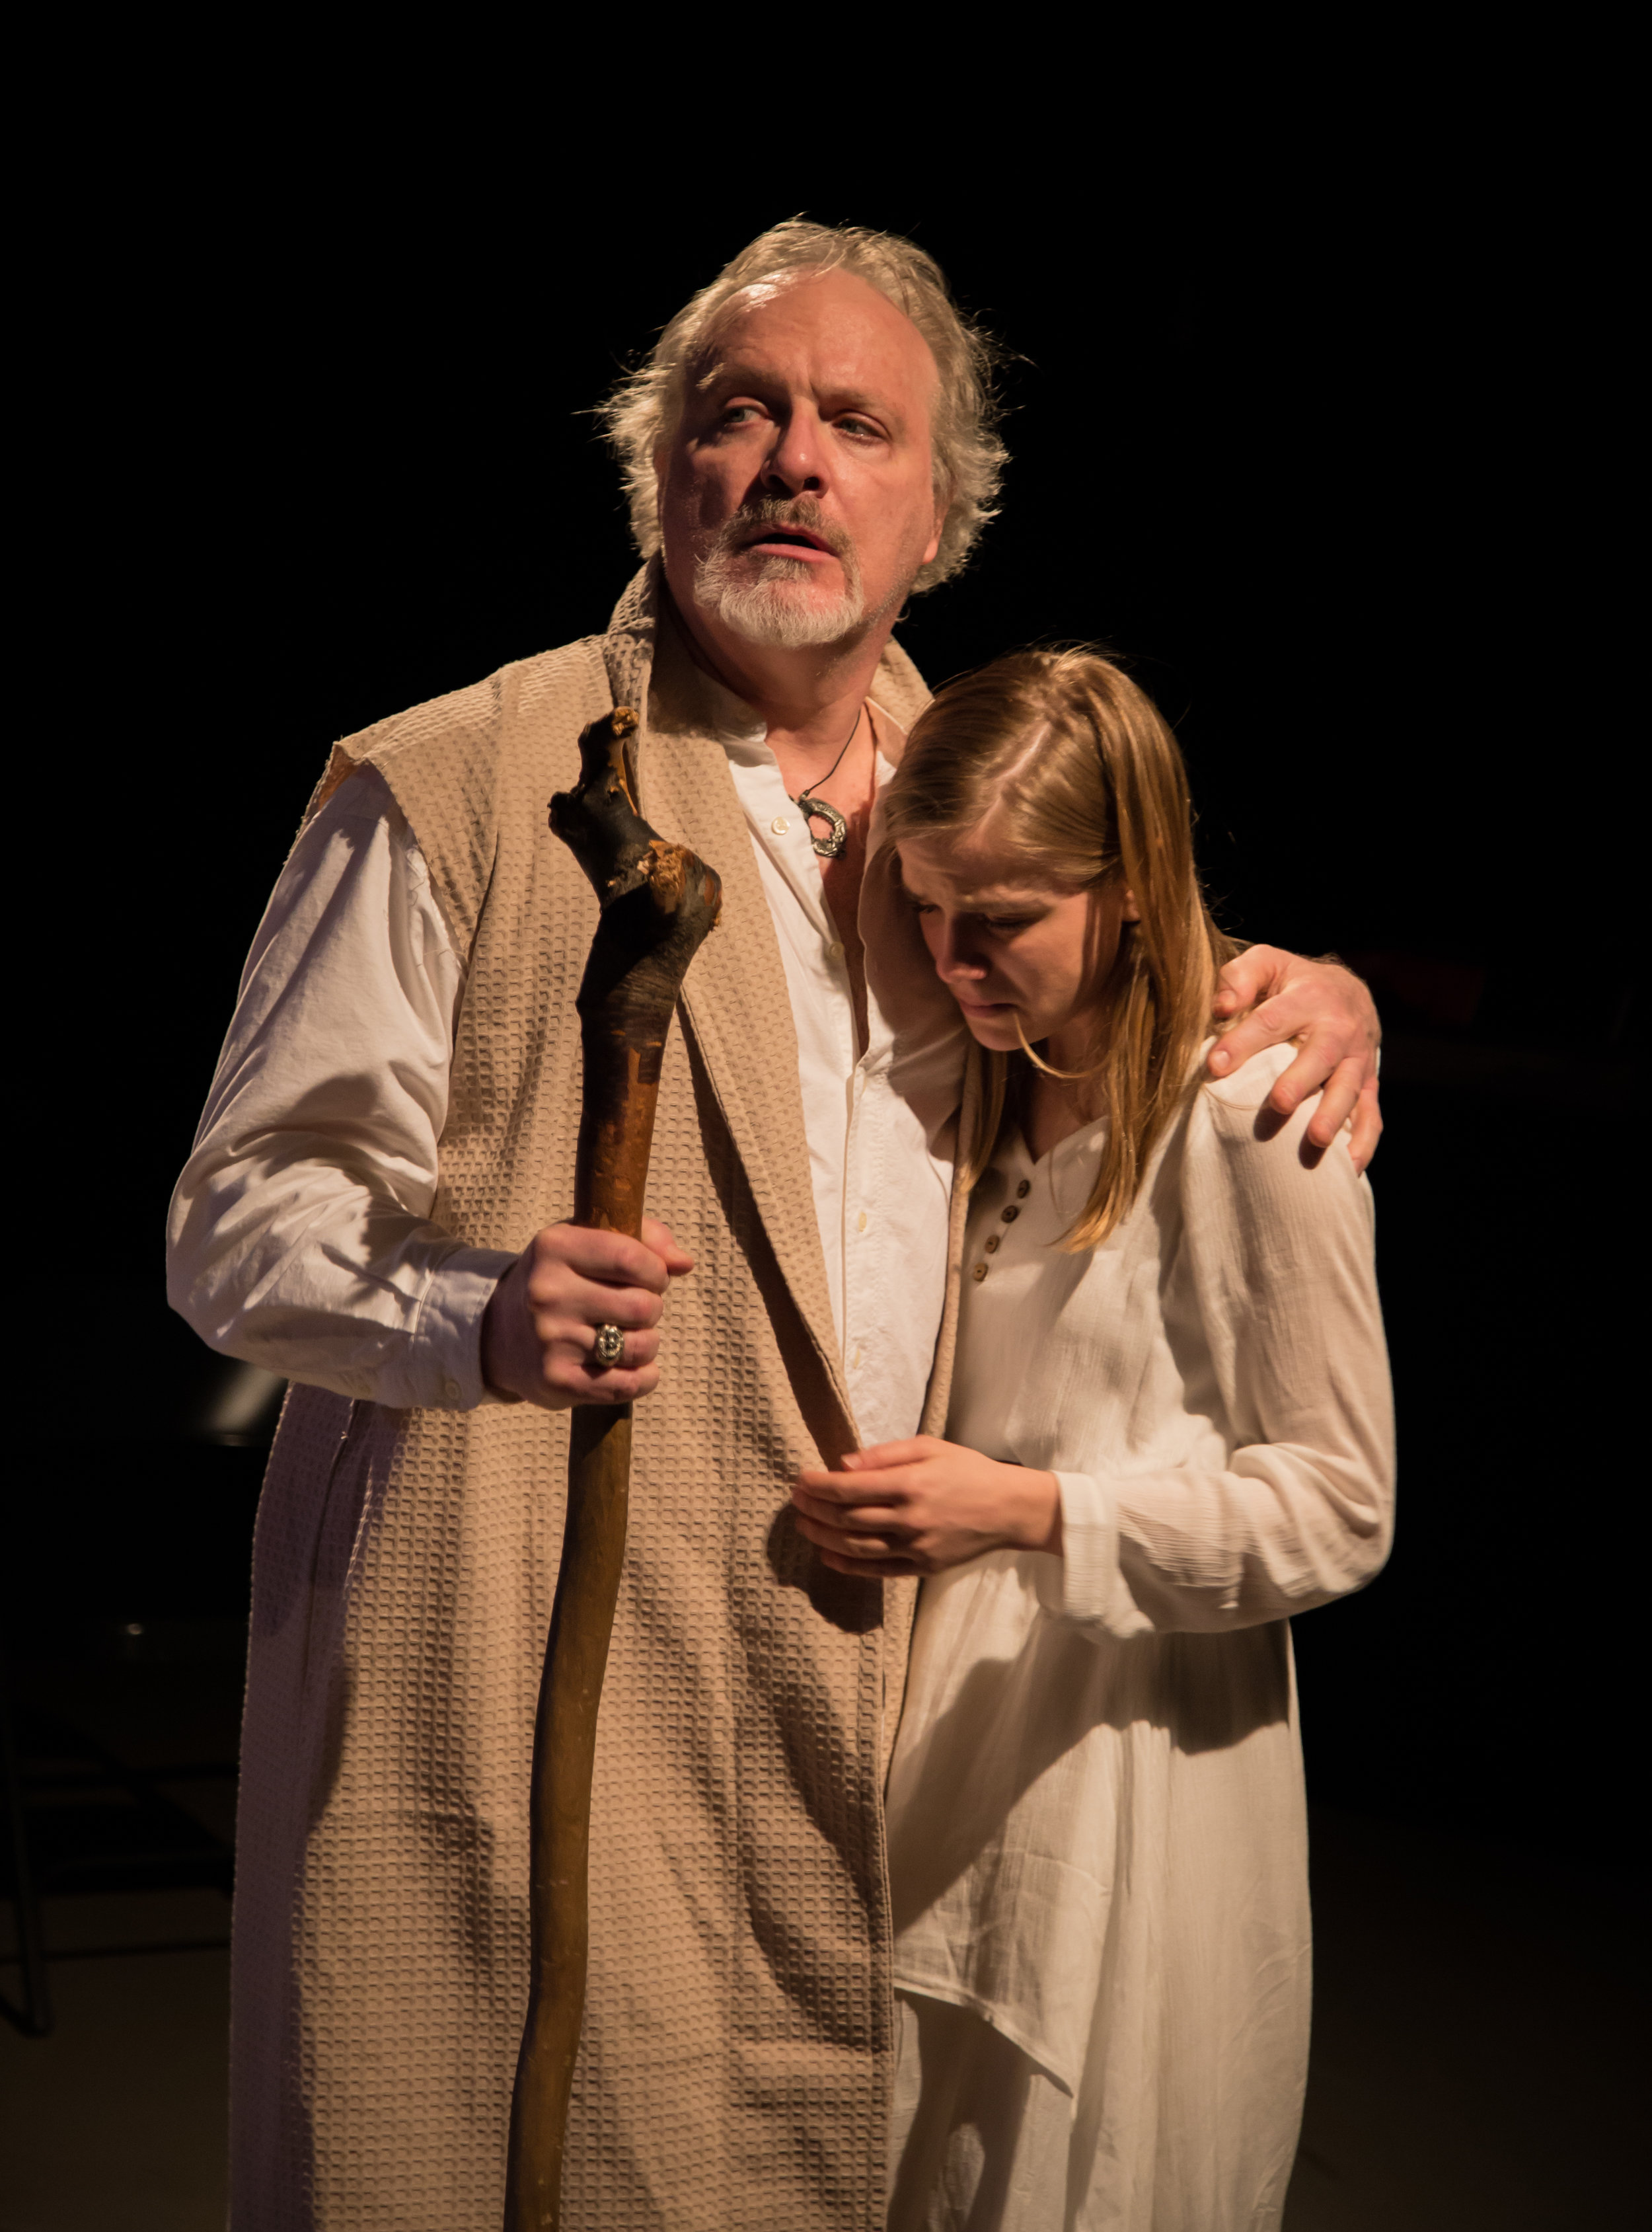 Prospero (Brian J. Coffey*) consoles his daughter, Miranda (Kelly McCready*)   in Ophelia Theatre Group's production of The Tempest by William Shakespeare.  The Tempest was performed at Ophelia Theater in Astoria, Queens. Photography courtesy of  John Robert Hoffman .   *appearing courtesy of AEA